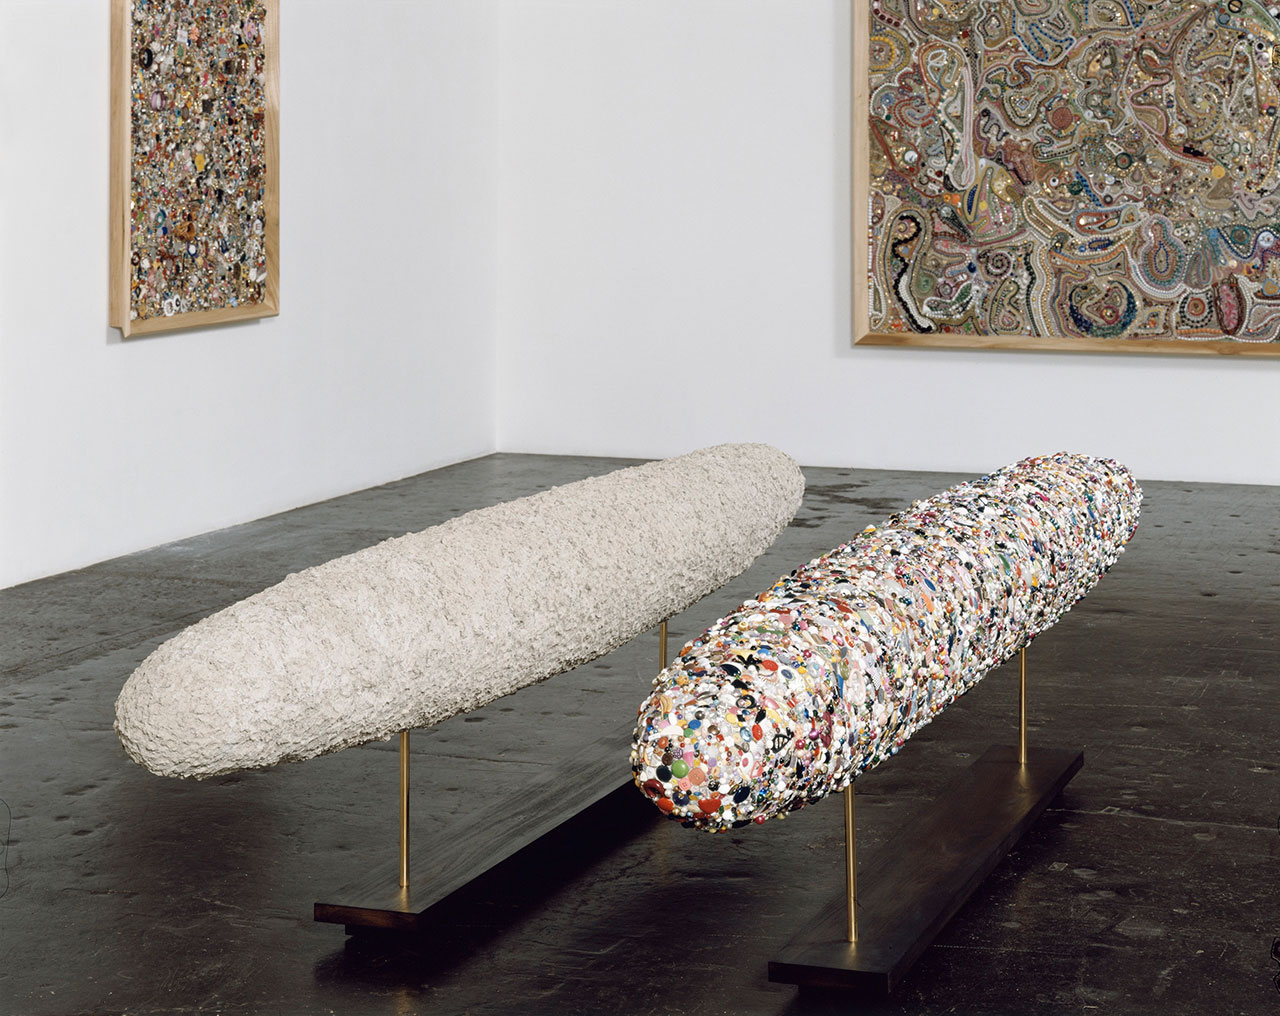 Mike Kelley, Balanced by Mass and Worth, 2001. Plastic, foam, epoxy, painted wood, miscellaneous beads and buttons. 68.6 x 340.4 x 38.1 cm / 27 x 134 x 15 in. Art © Mike Kelley Foundation for the Arts. All Rights Reserved / Licensed by VAGA, New York, NY. Collection of Margaret and Daniel S. Loeb. Courtesy the Foundation and Hauser & Wirth. Photo by Nic Tenwiggenhorn, Düsseldorf.